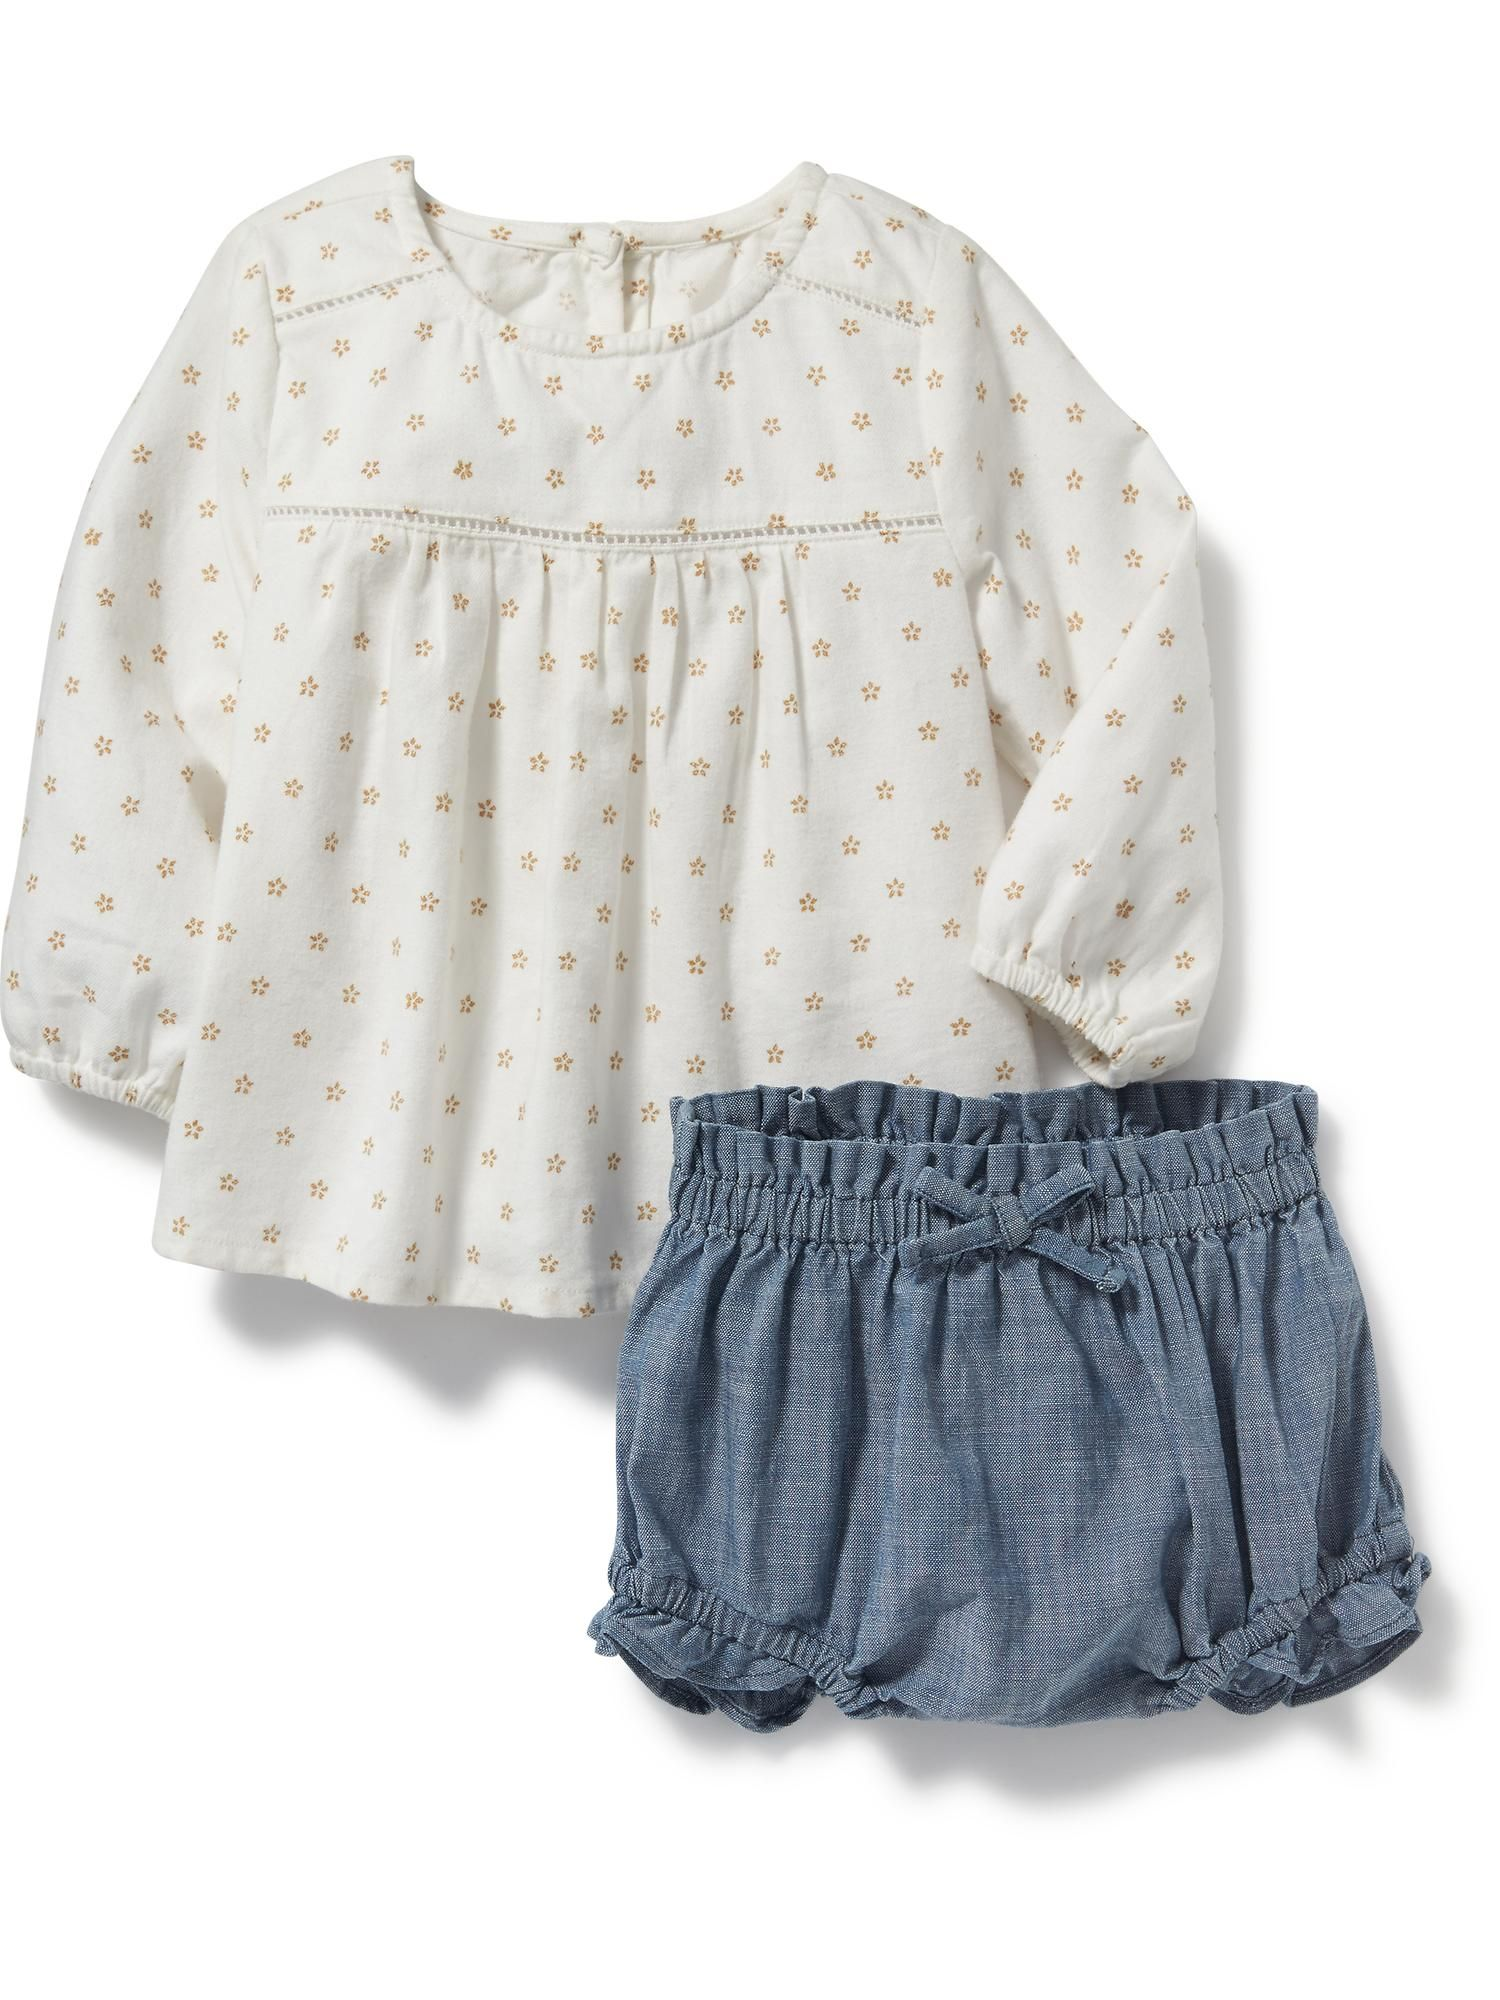 2 Piece Top and Bloomer Set for Baby Old Navy